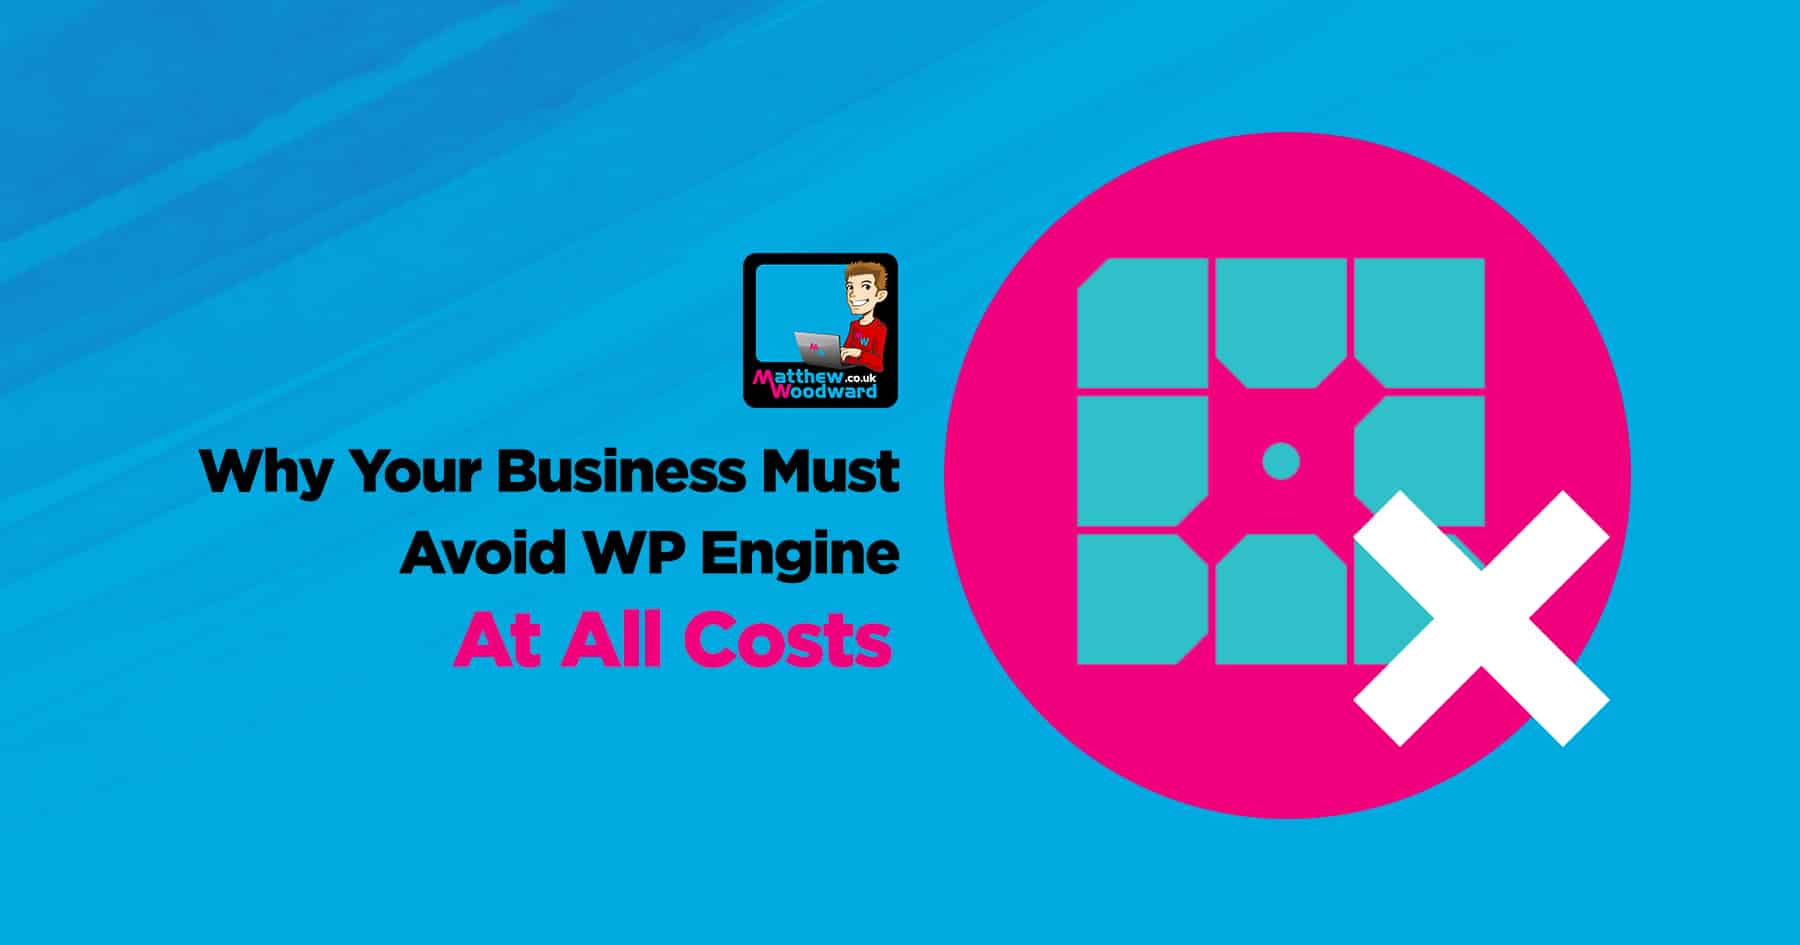 Why Your Business Must Avoid WP Engine At All Costs